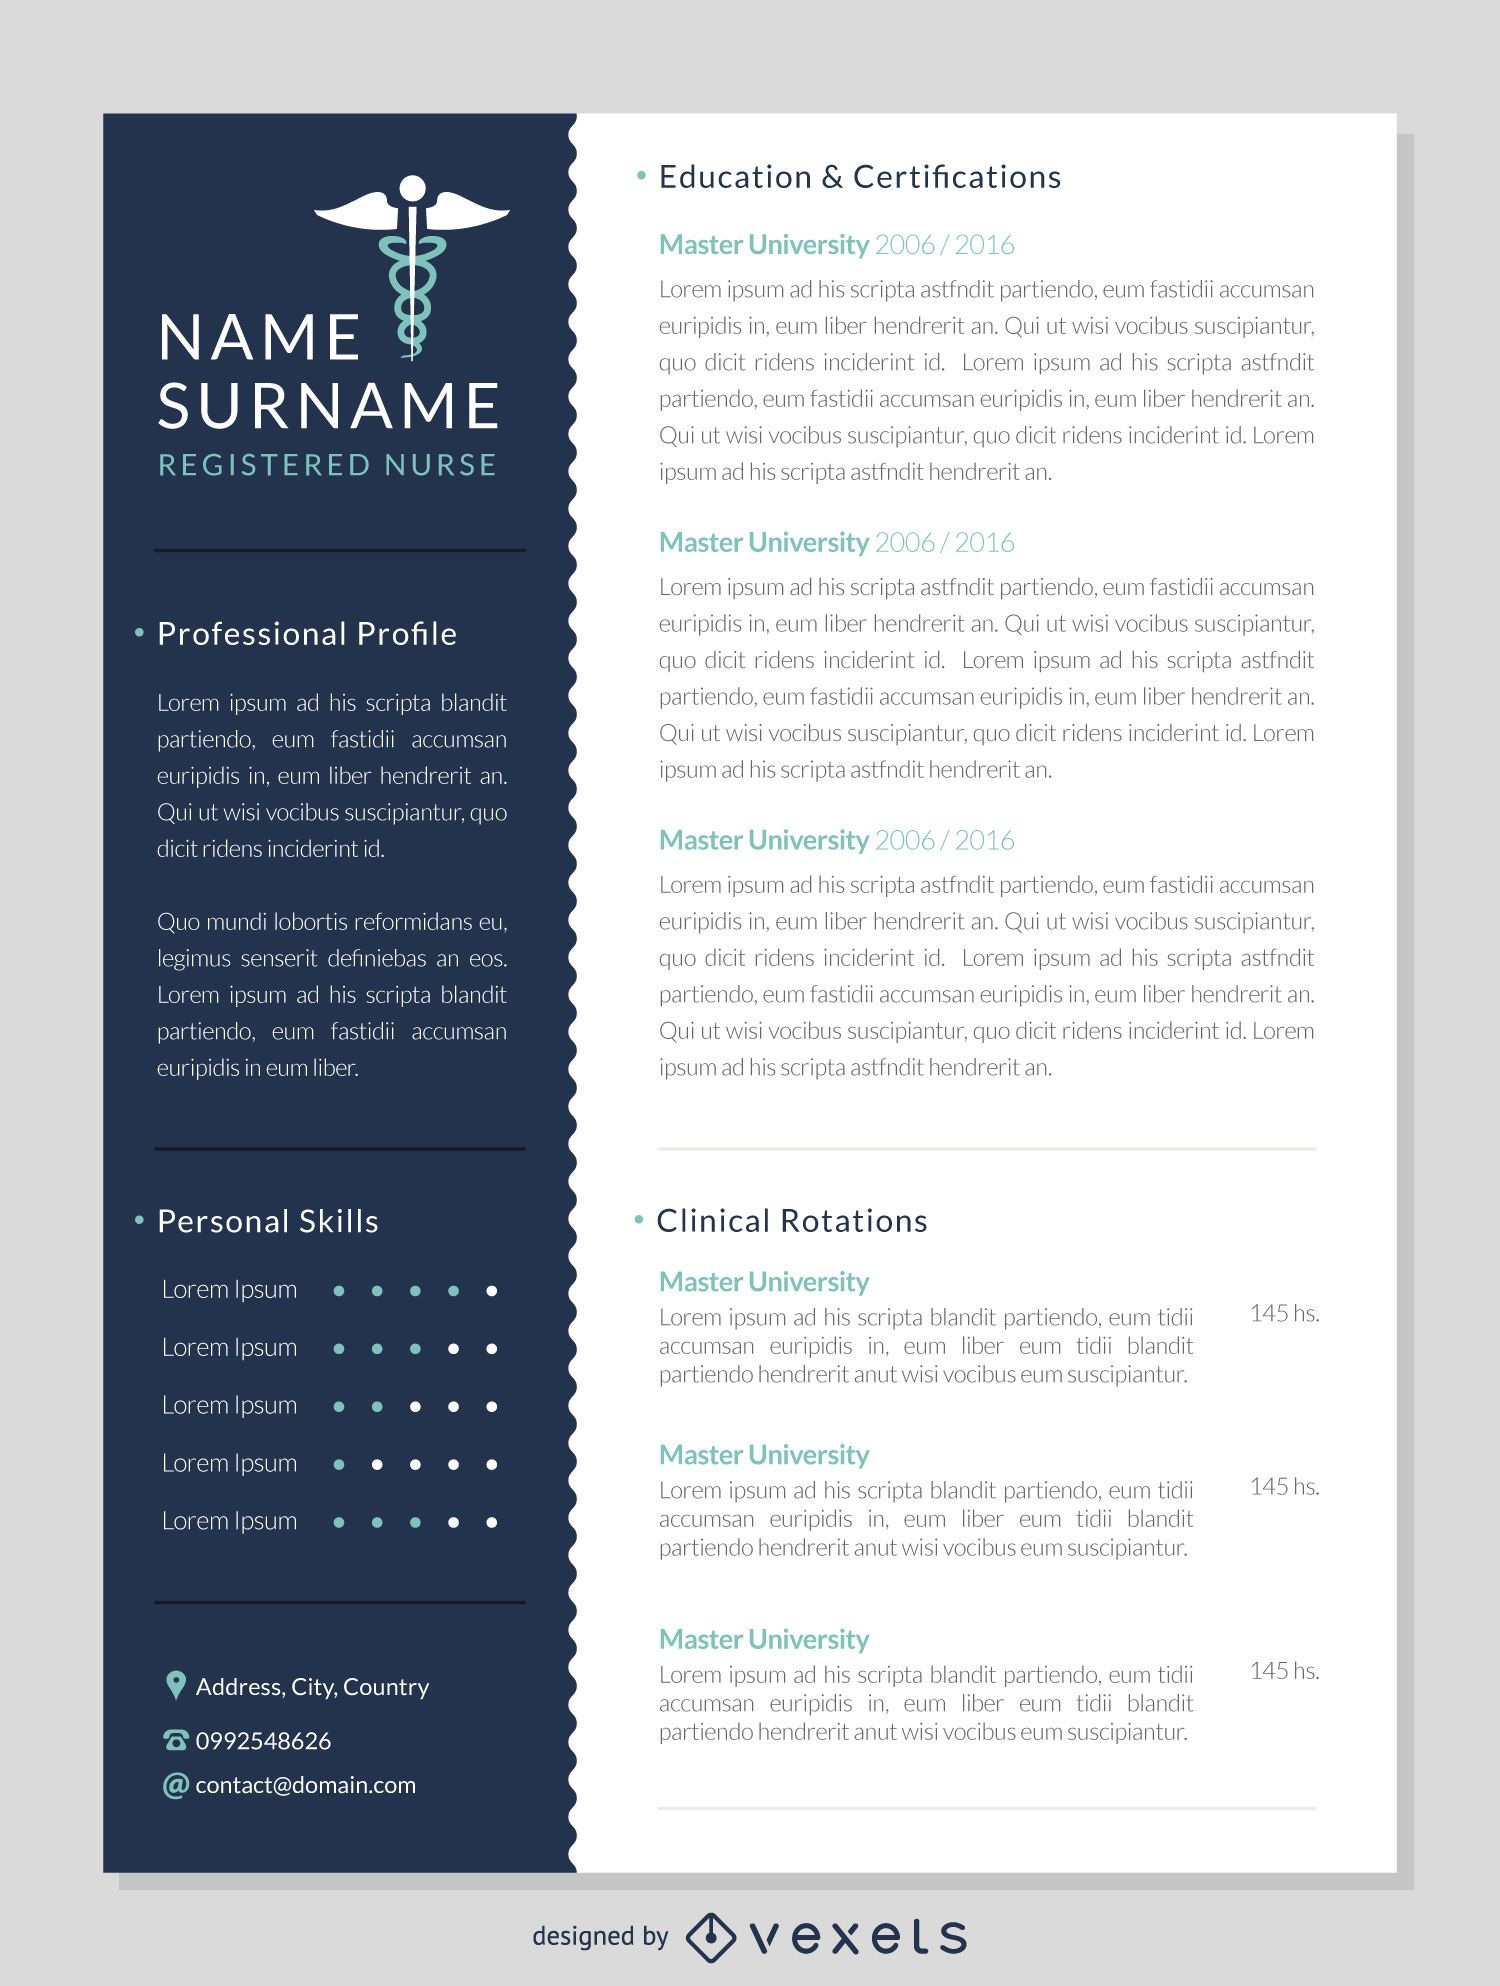 Nurse Resume Mockup Template. Download Large Image 1450x1920px  Psychiatric Nurse Resume